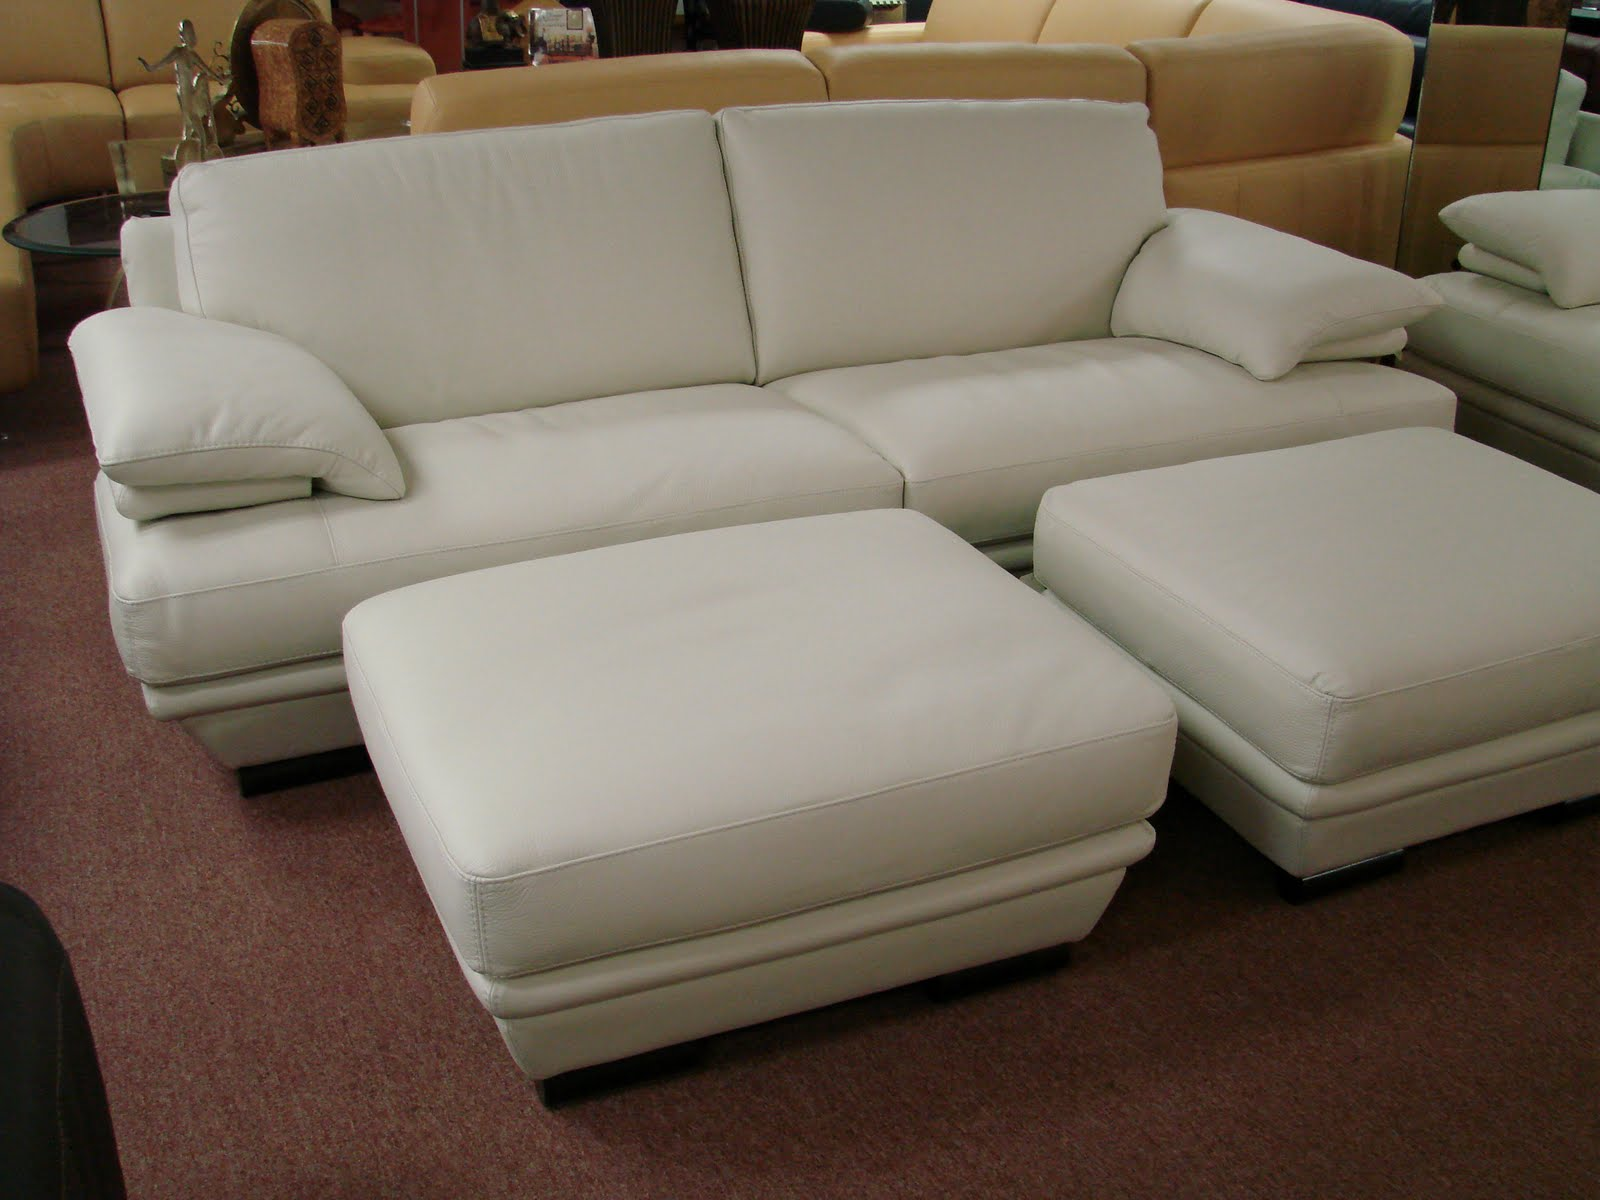 Image Result For White Leather Sectional With Ottoman